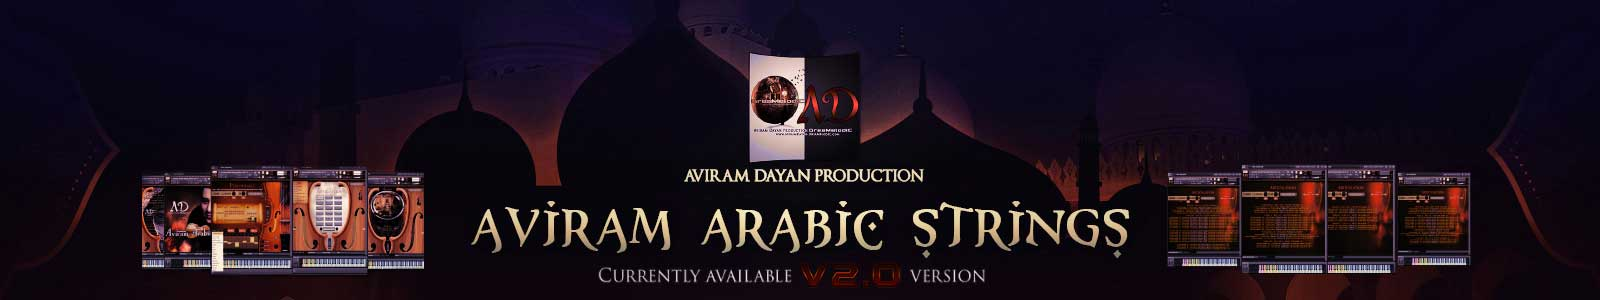 aviram arabic strings